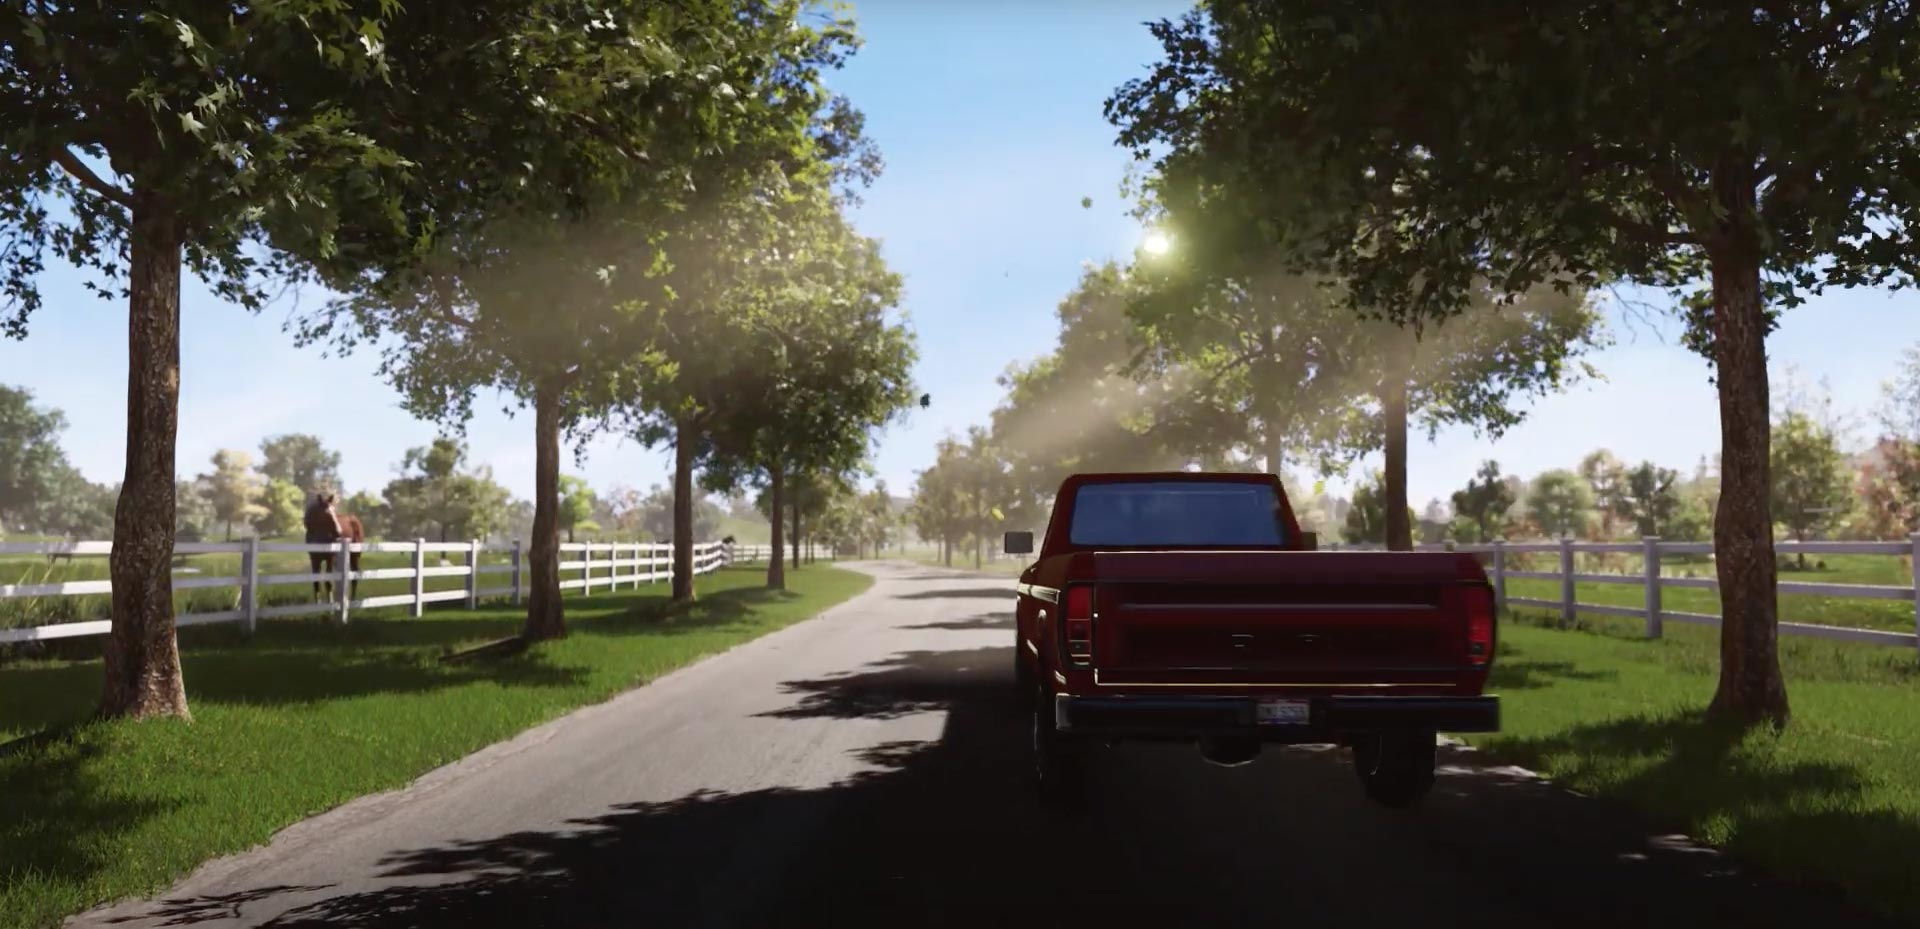 Truck Driving Up Homefront Entrance Road